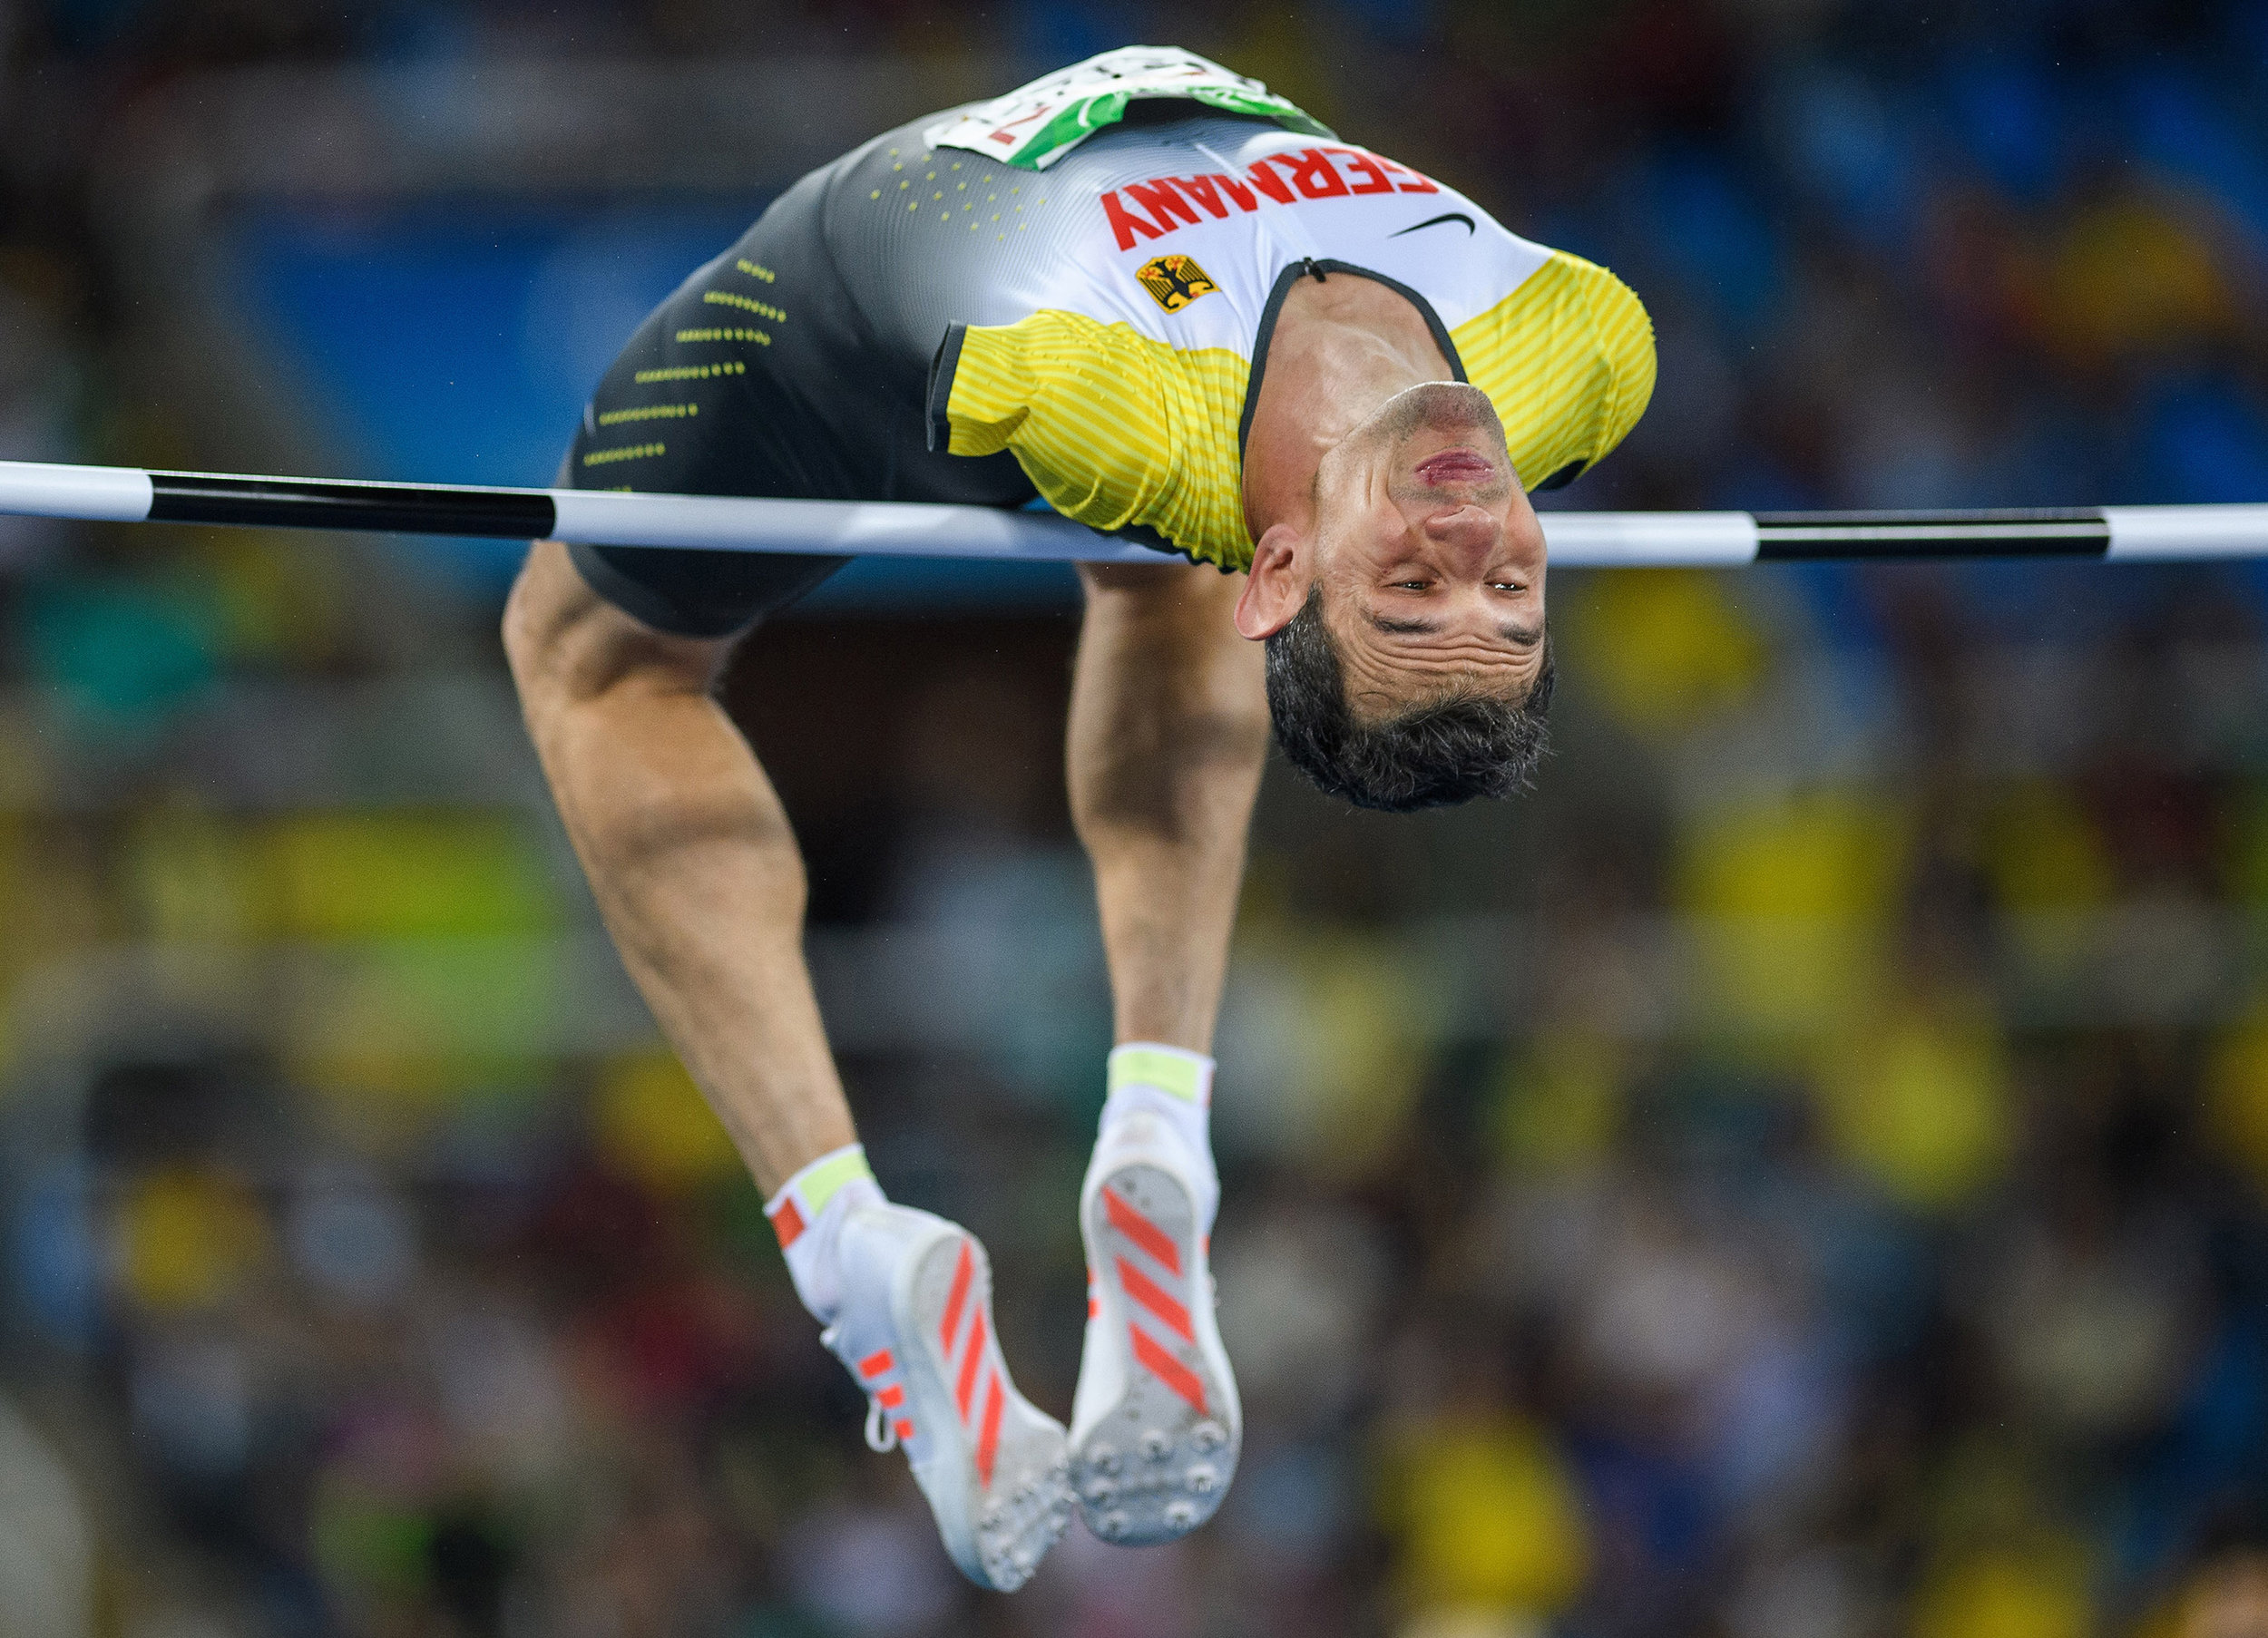 Reinhold B�tzel of Germany competes in the Men's High Jump T47 Final during the 2016 Paralympic Games, Rio de Janeiro, Brazil.Photo by Bob Martin  16 September 2016